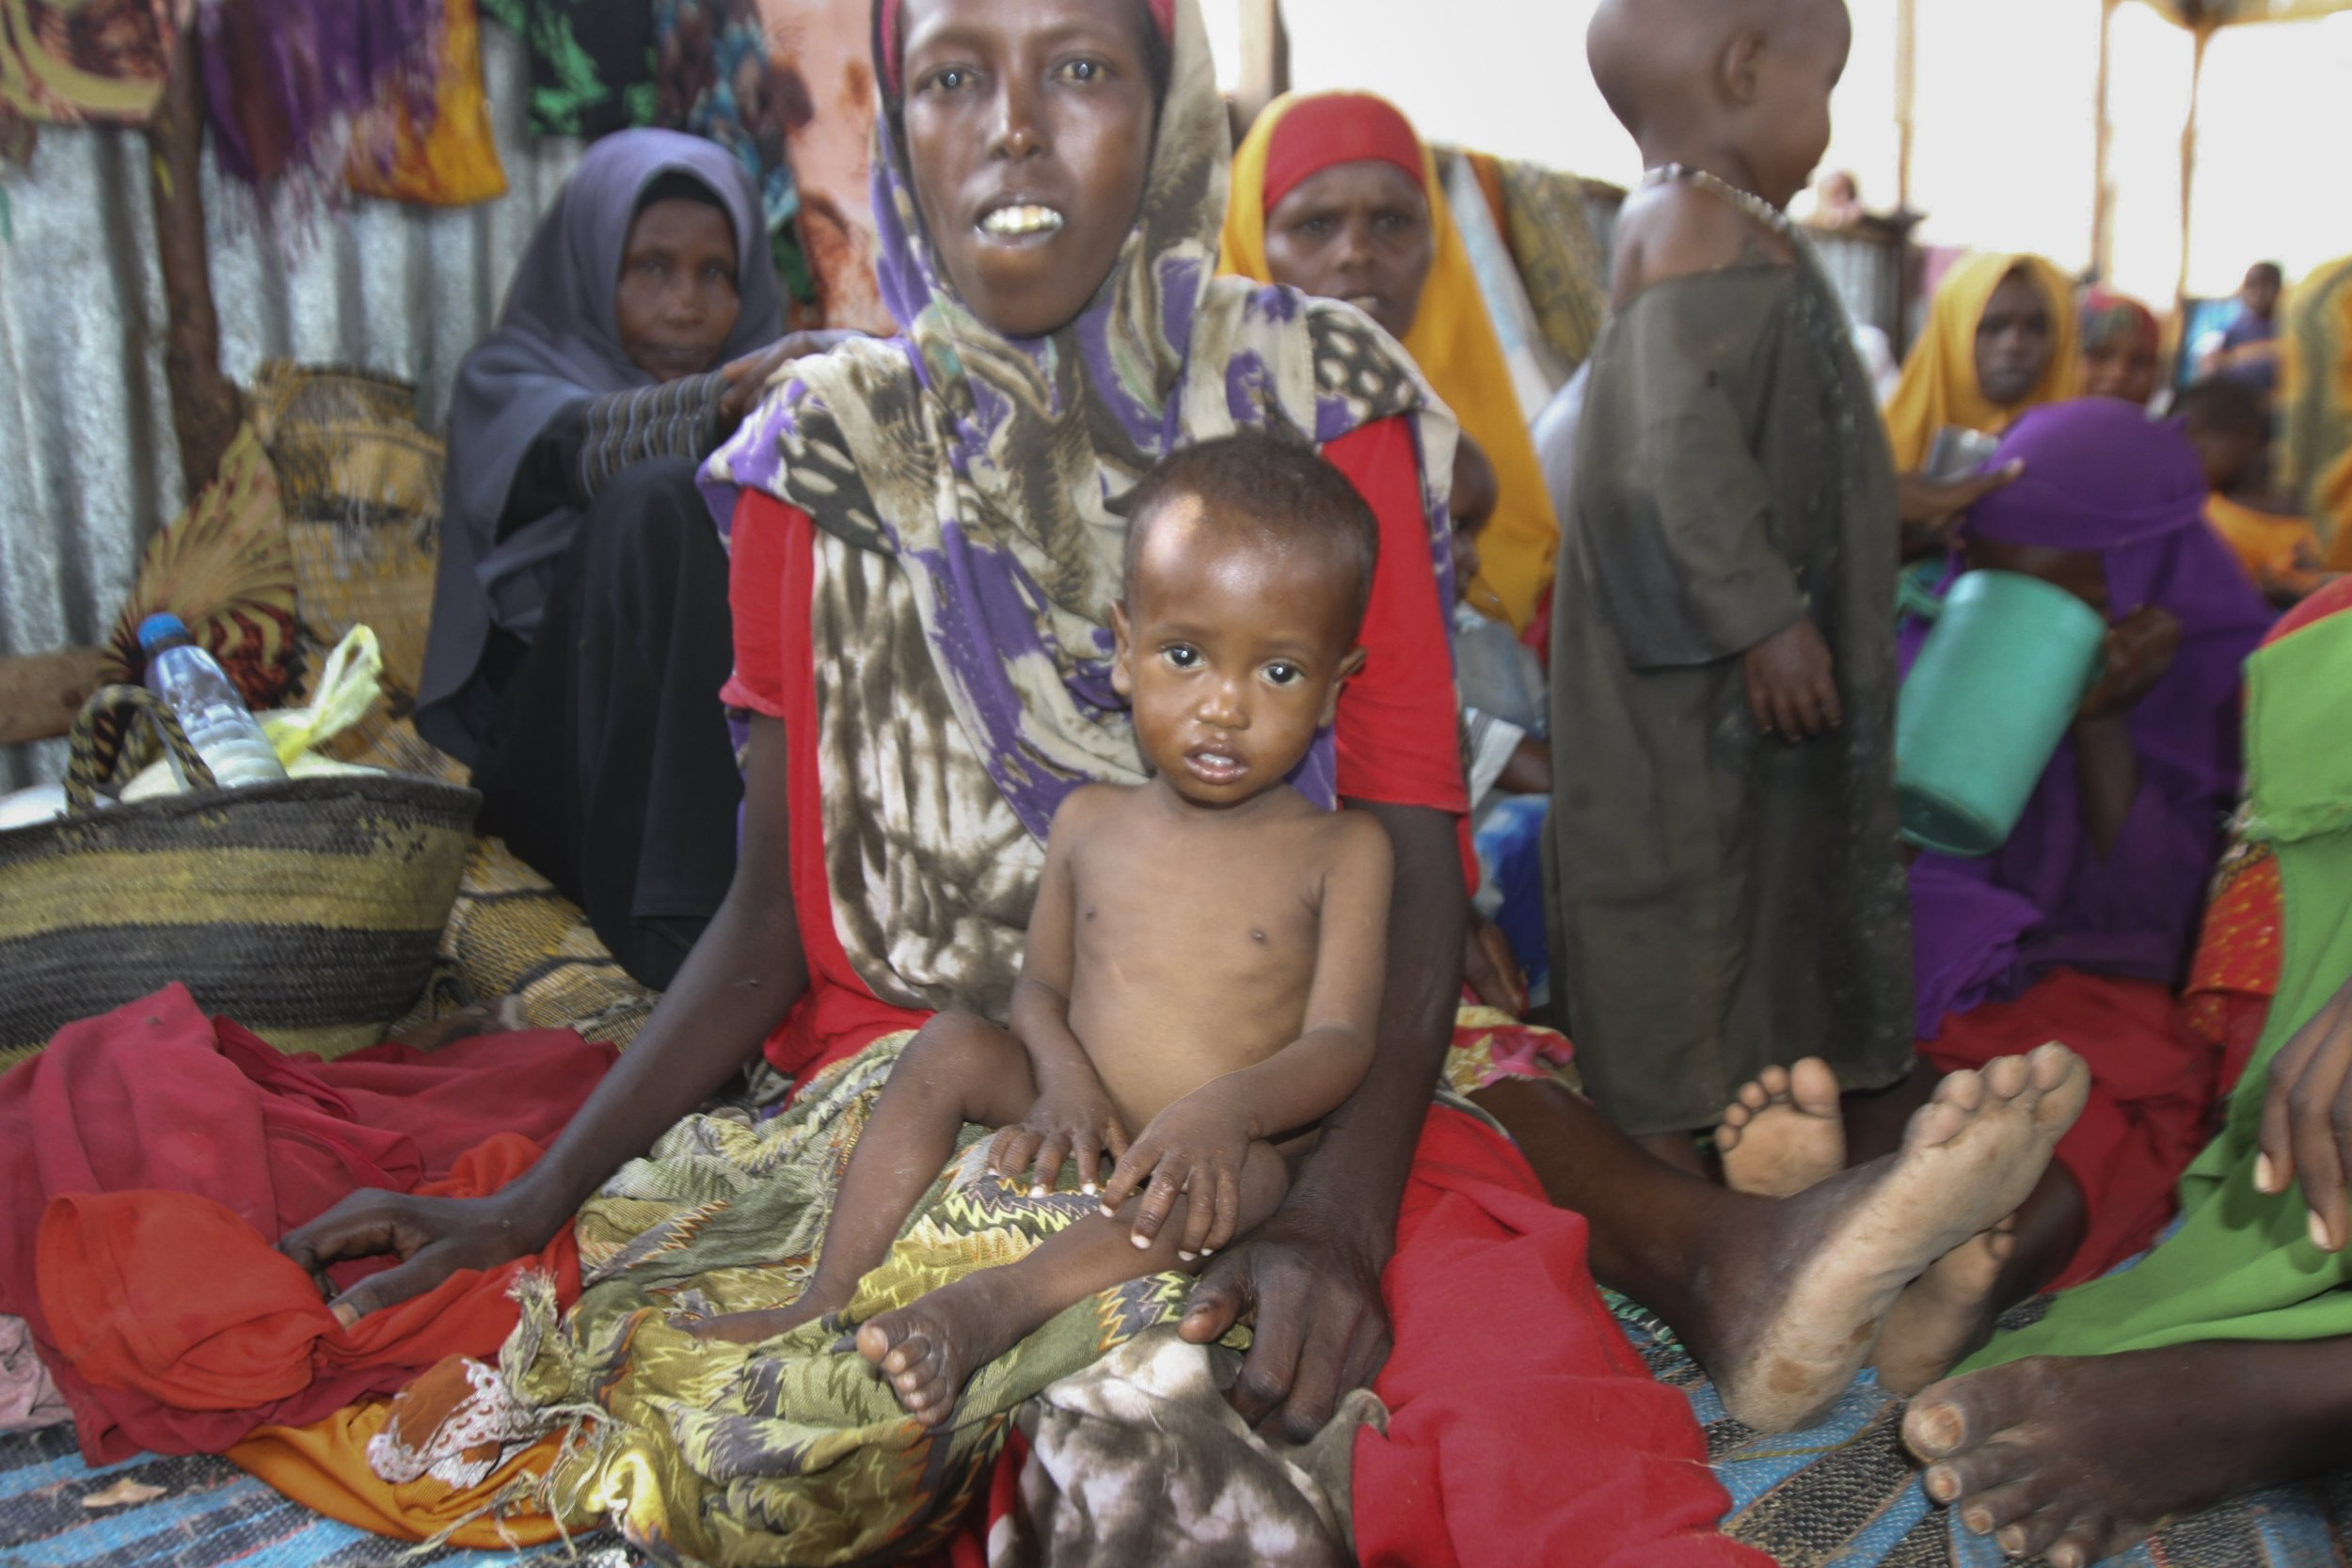 Millions of children are starving as the world does nothing, United Nations warn